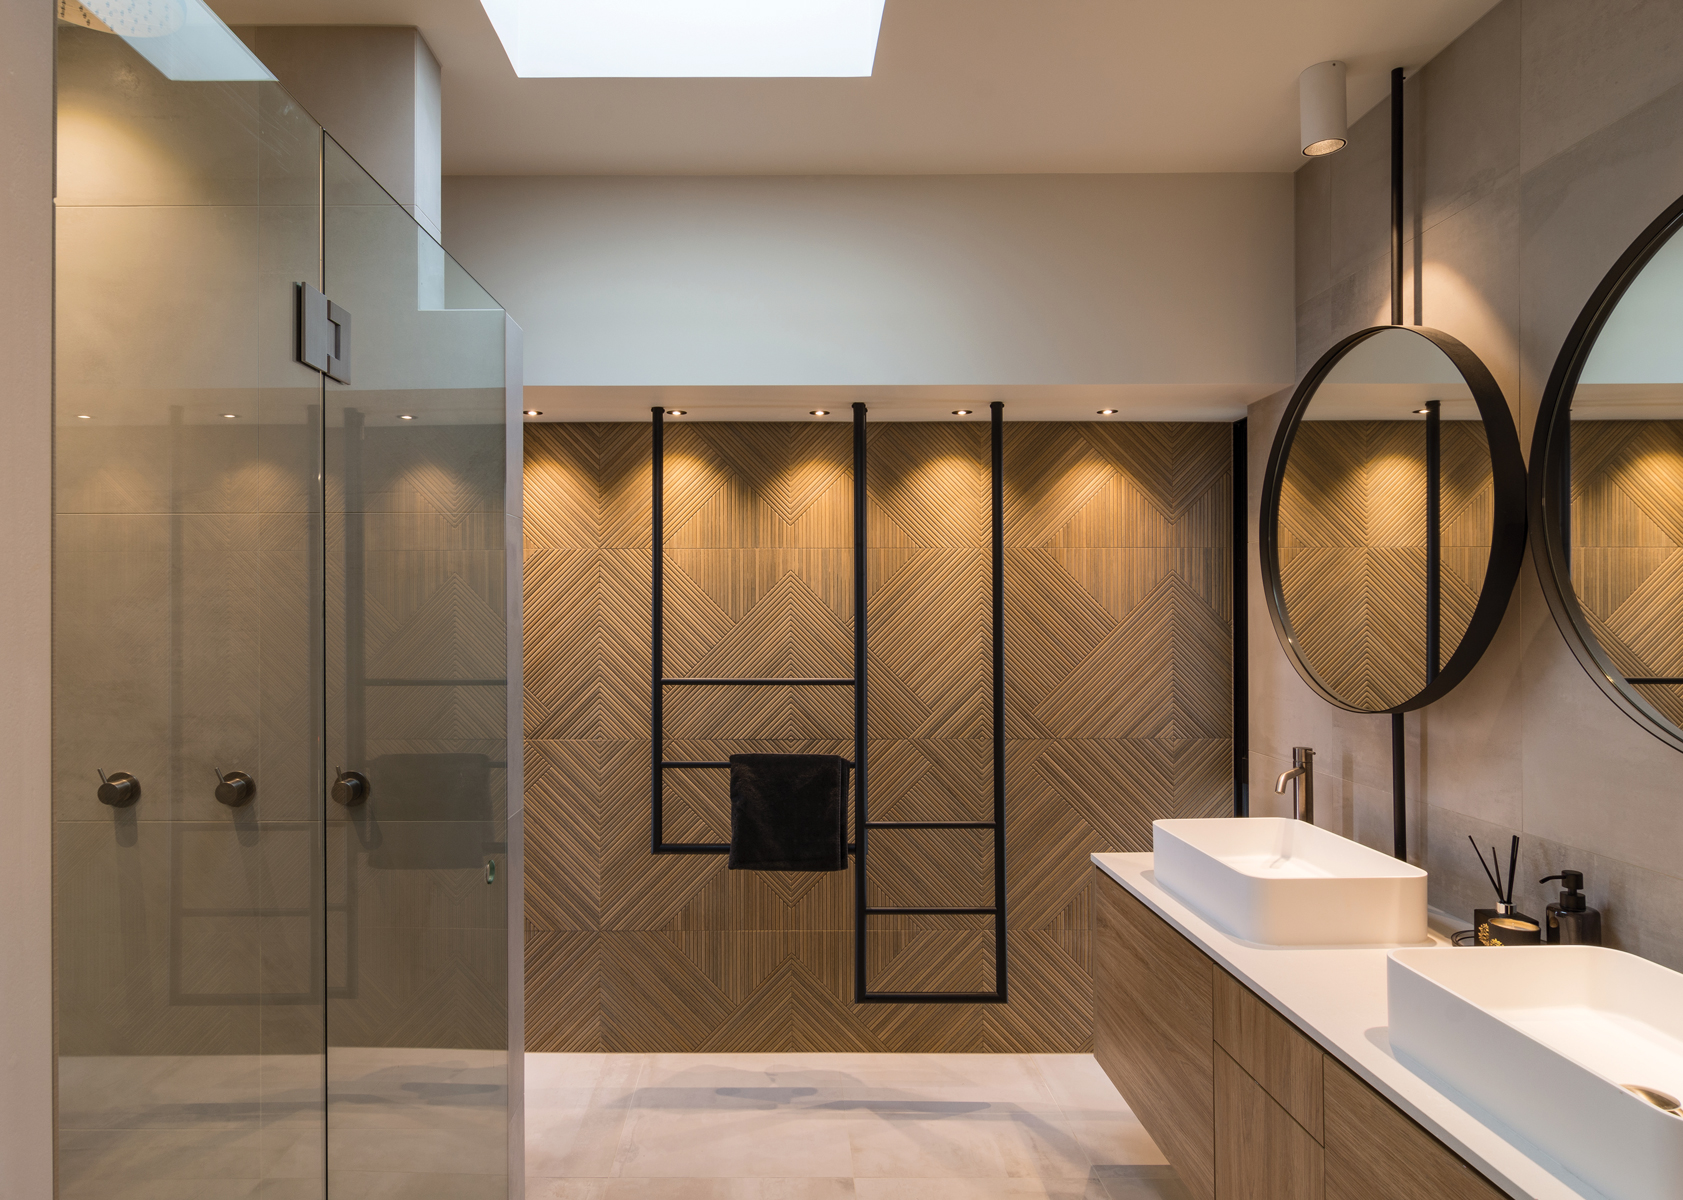 BATHROOM:  The ensuite bathroom features exquisite timber-look tiles to provide a connection with the timber used in the bedroom and wardrobe furniture.